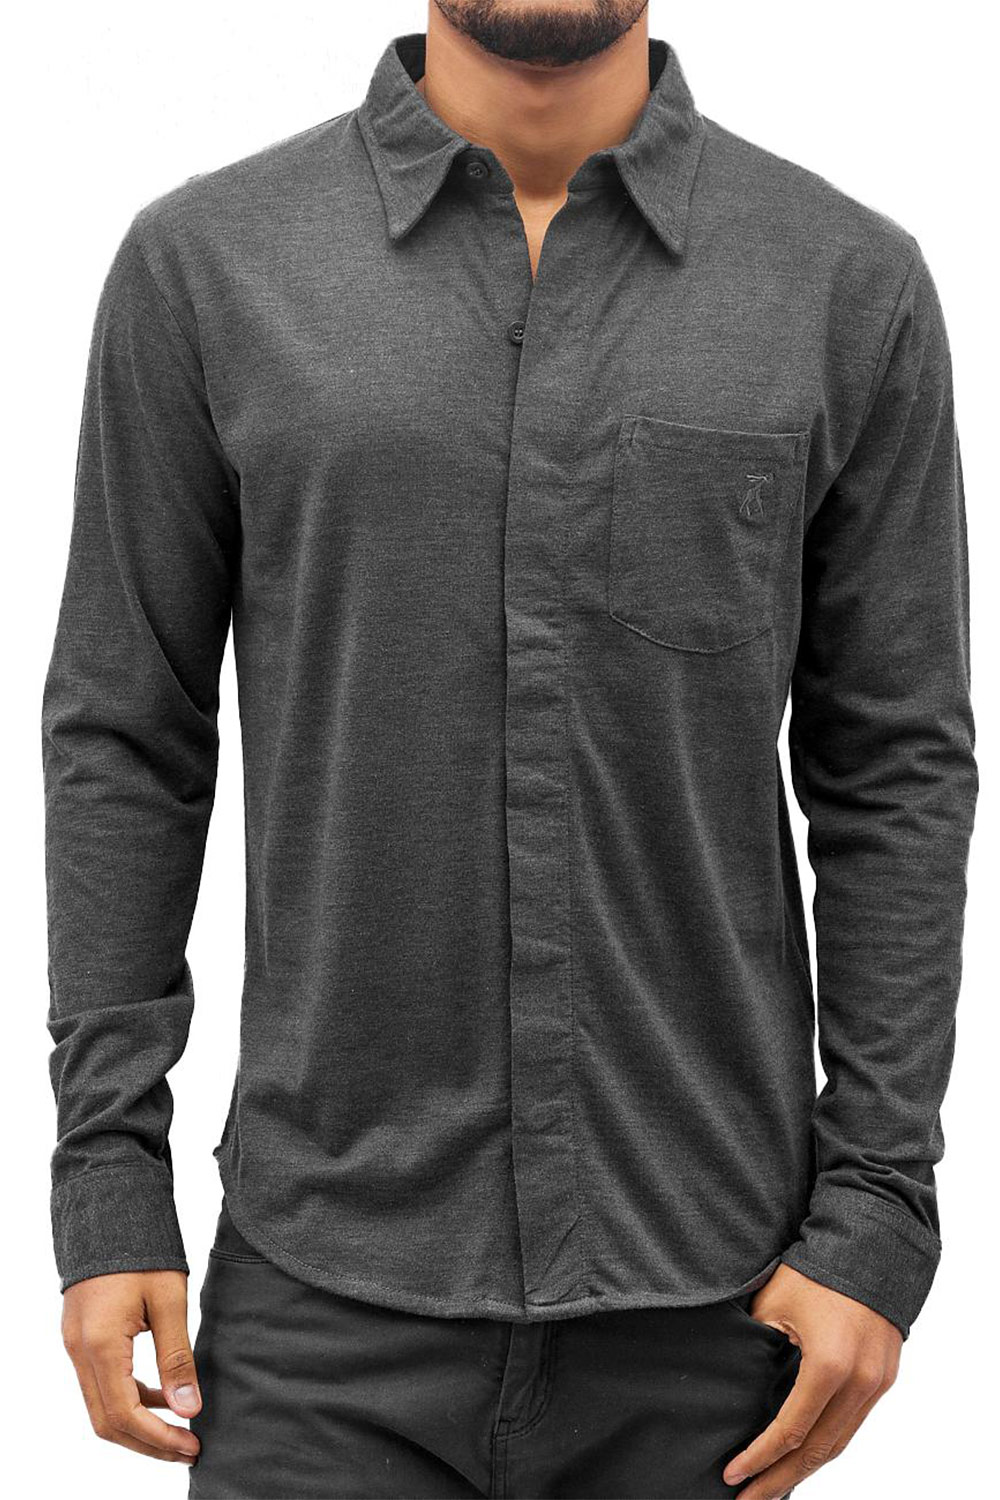 CAZZY CLANG Shirt Anthracite at oboy.com